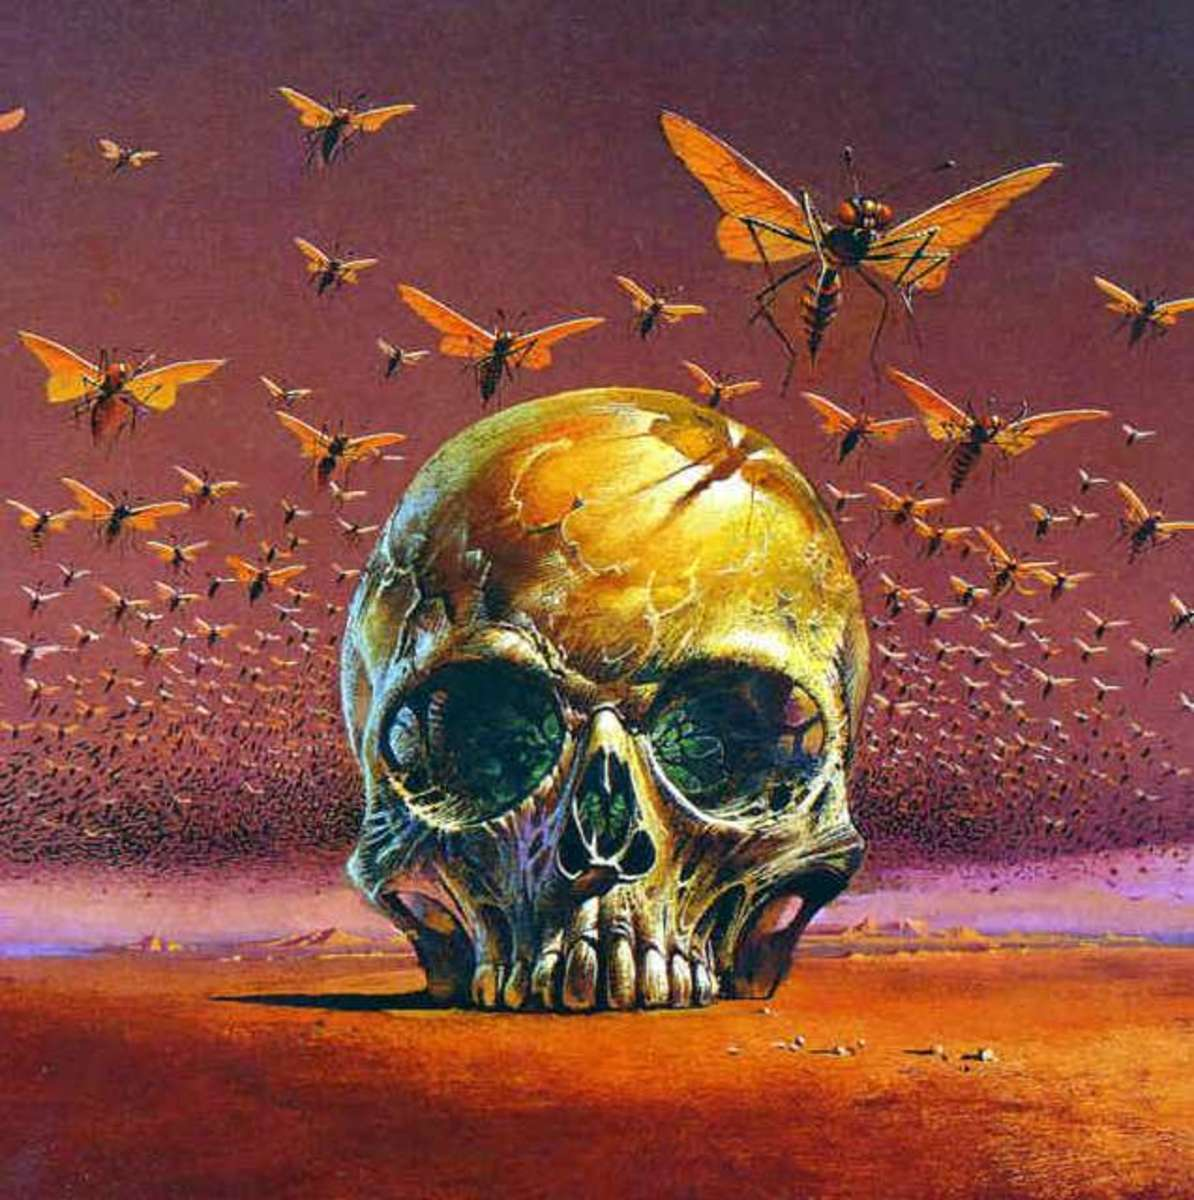 The Green Brain - art by Bruce Pennington